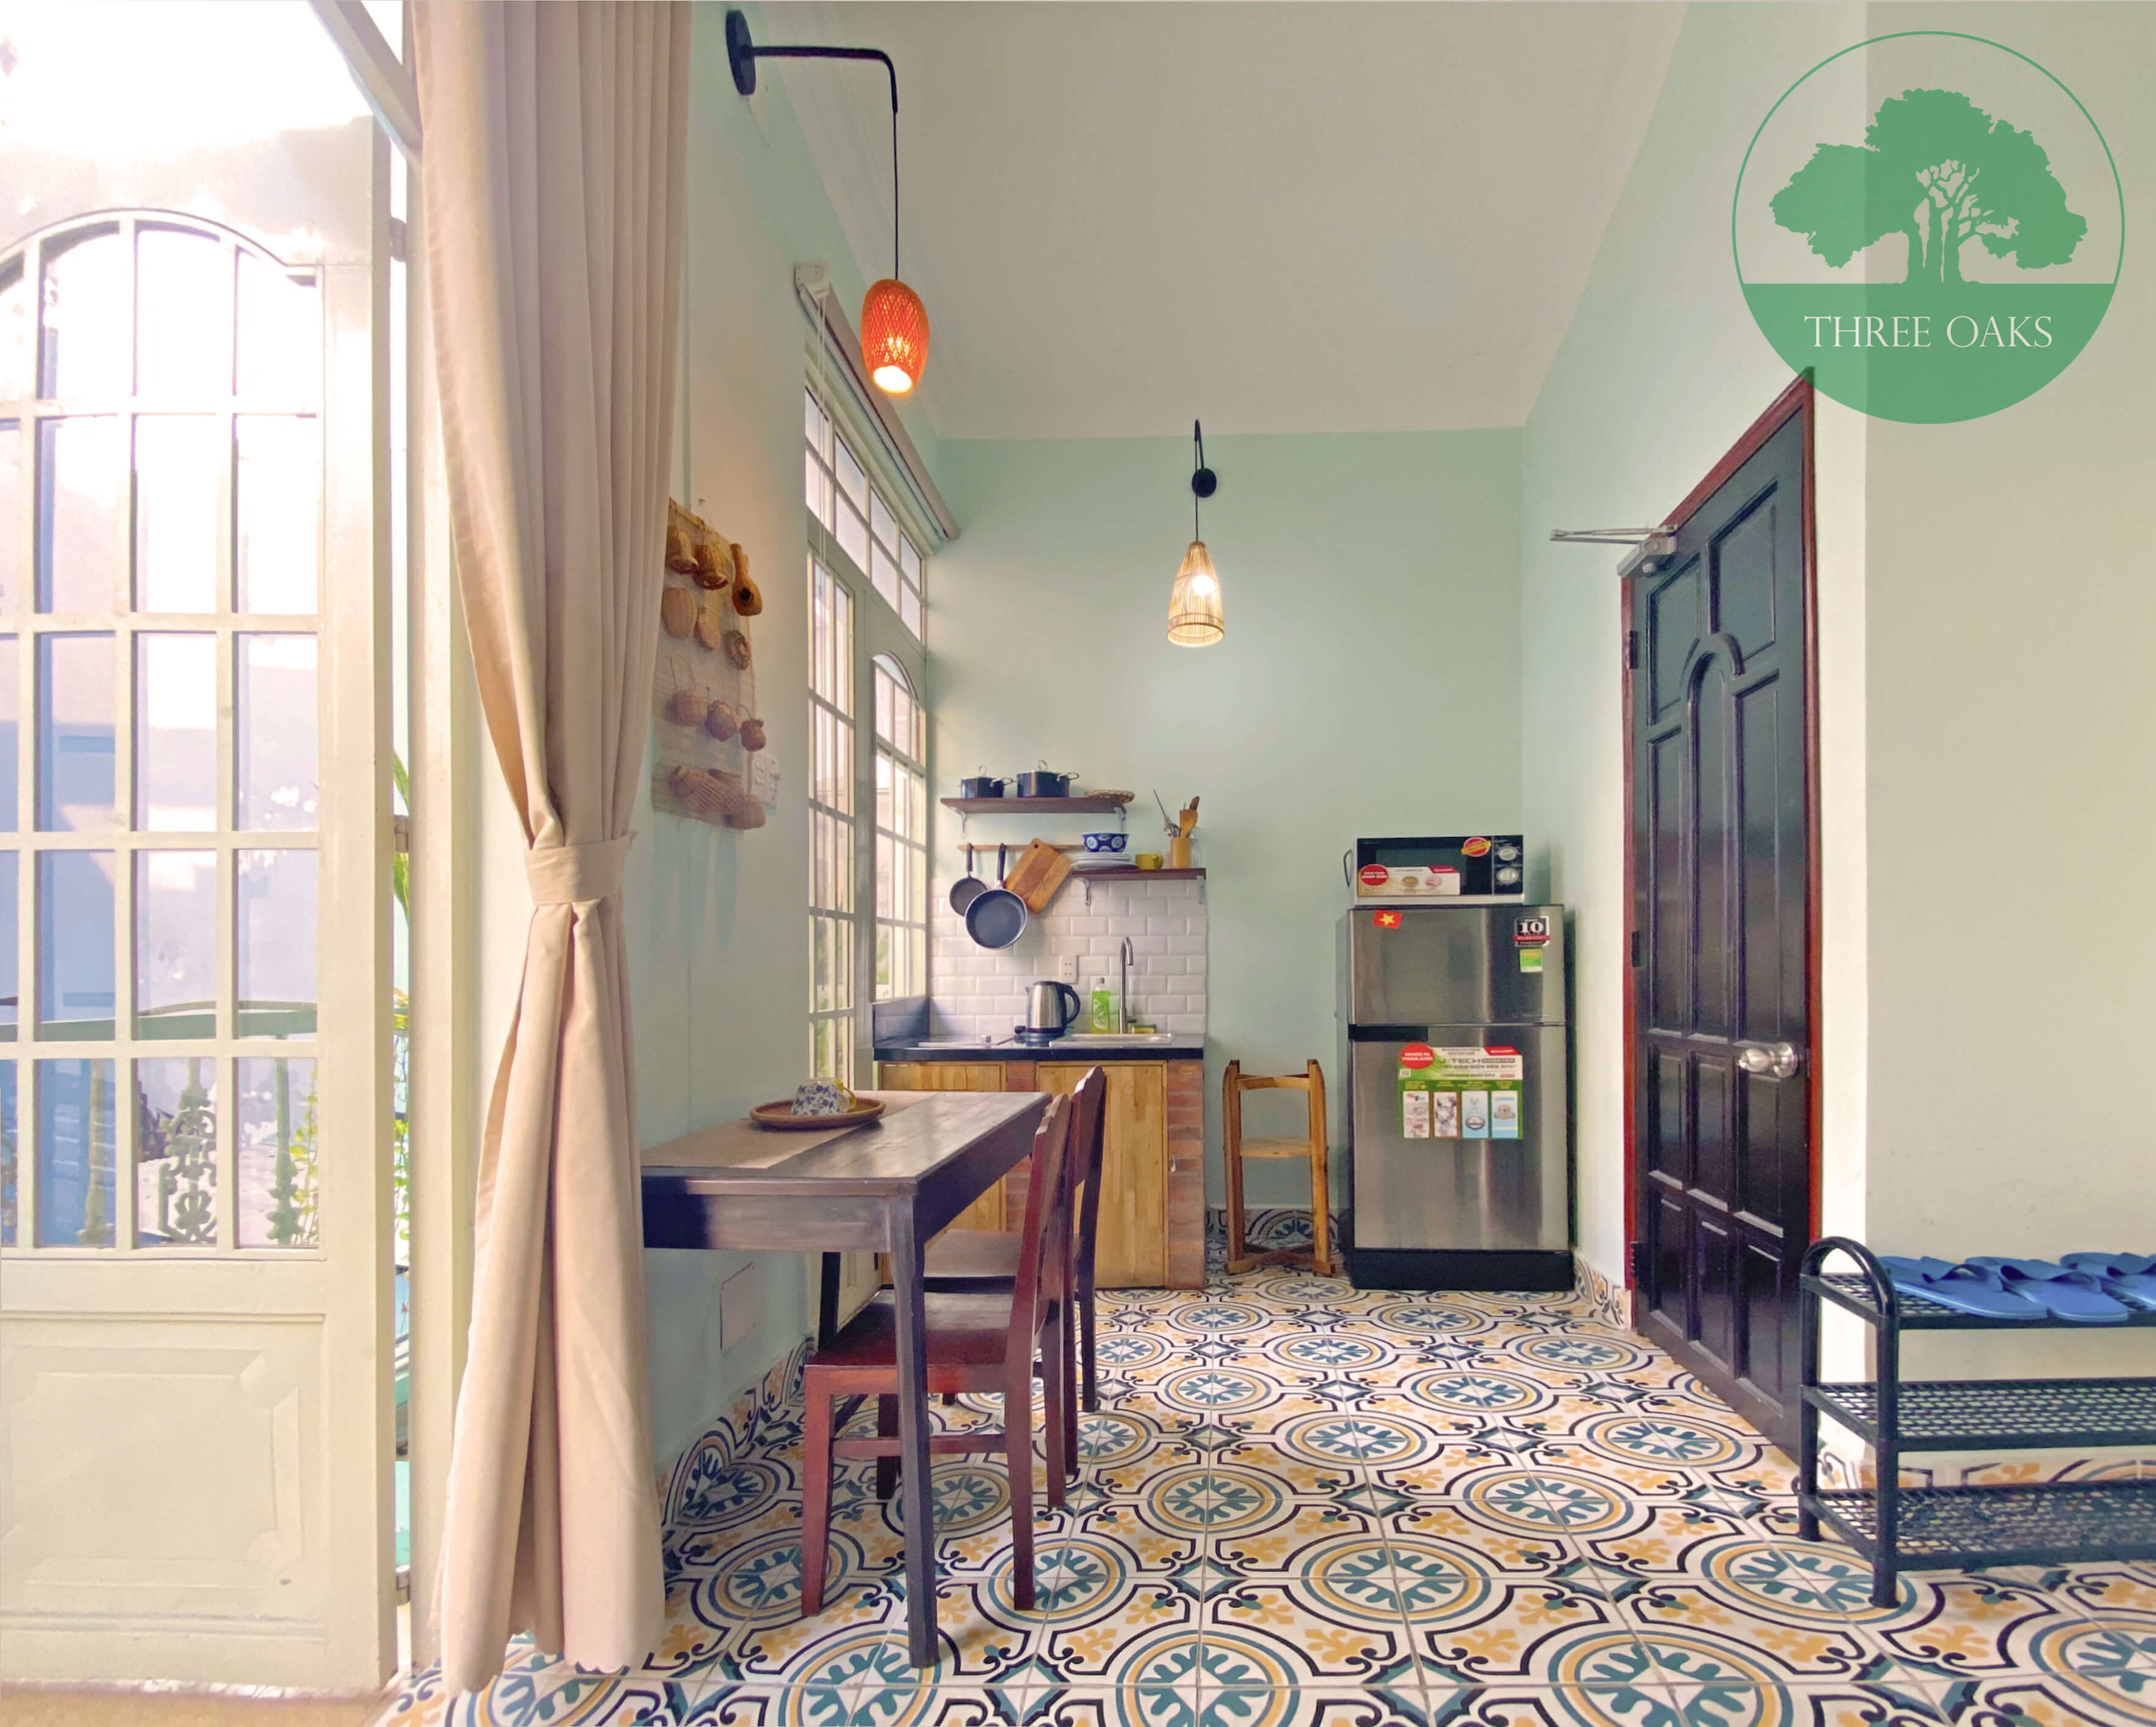 studios-and-apartments-for-rent-in-Ho-Chi-Minh-in-District-1-tybe-b-10